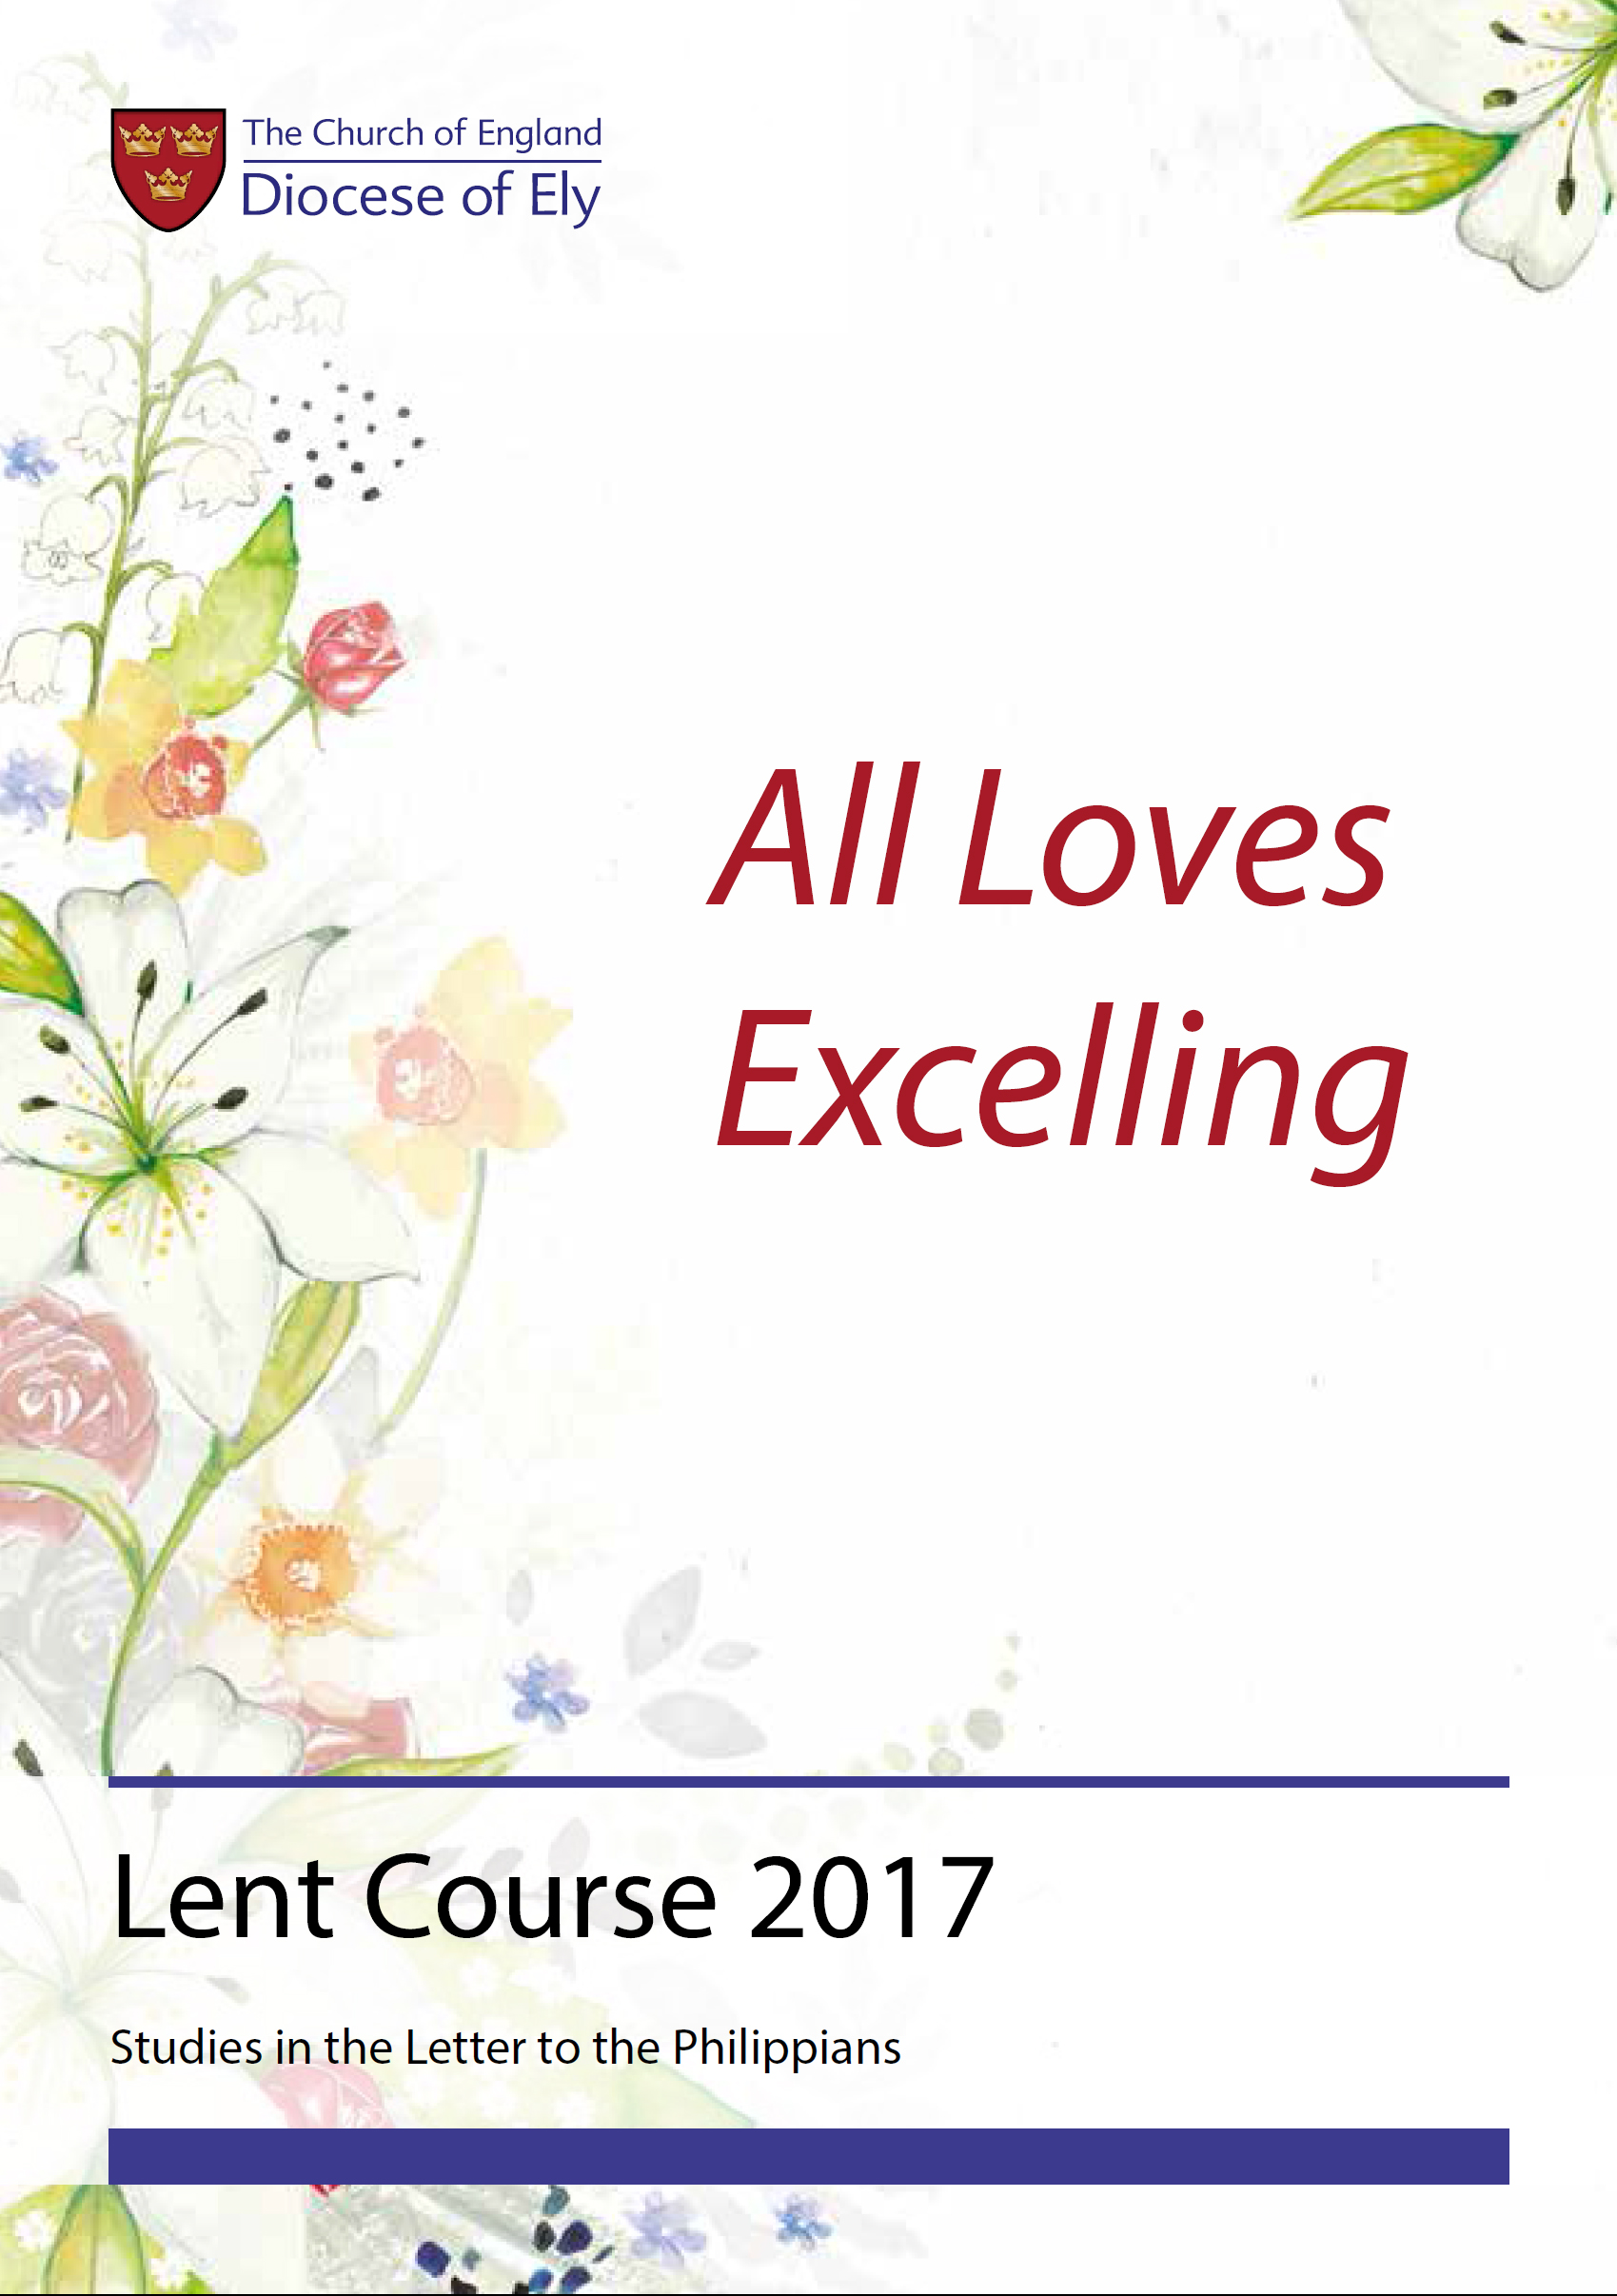 ely diocese launches lent course all loves excelling ely diocese launches 2017 lent course all loves excelling